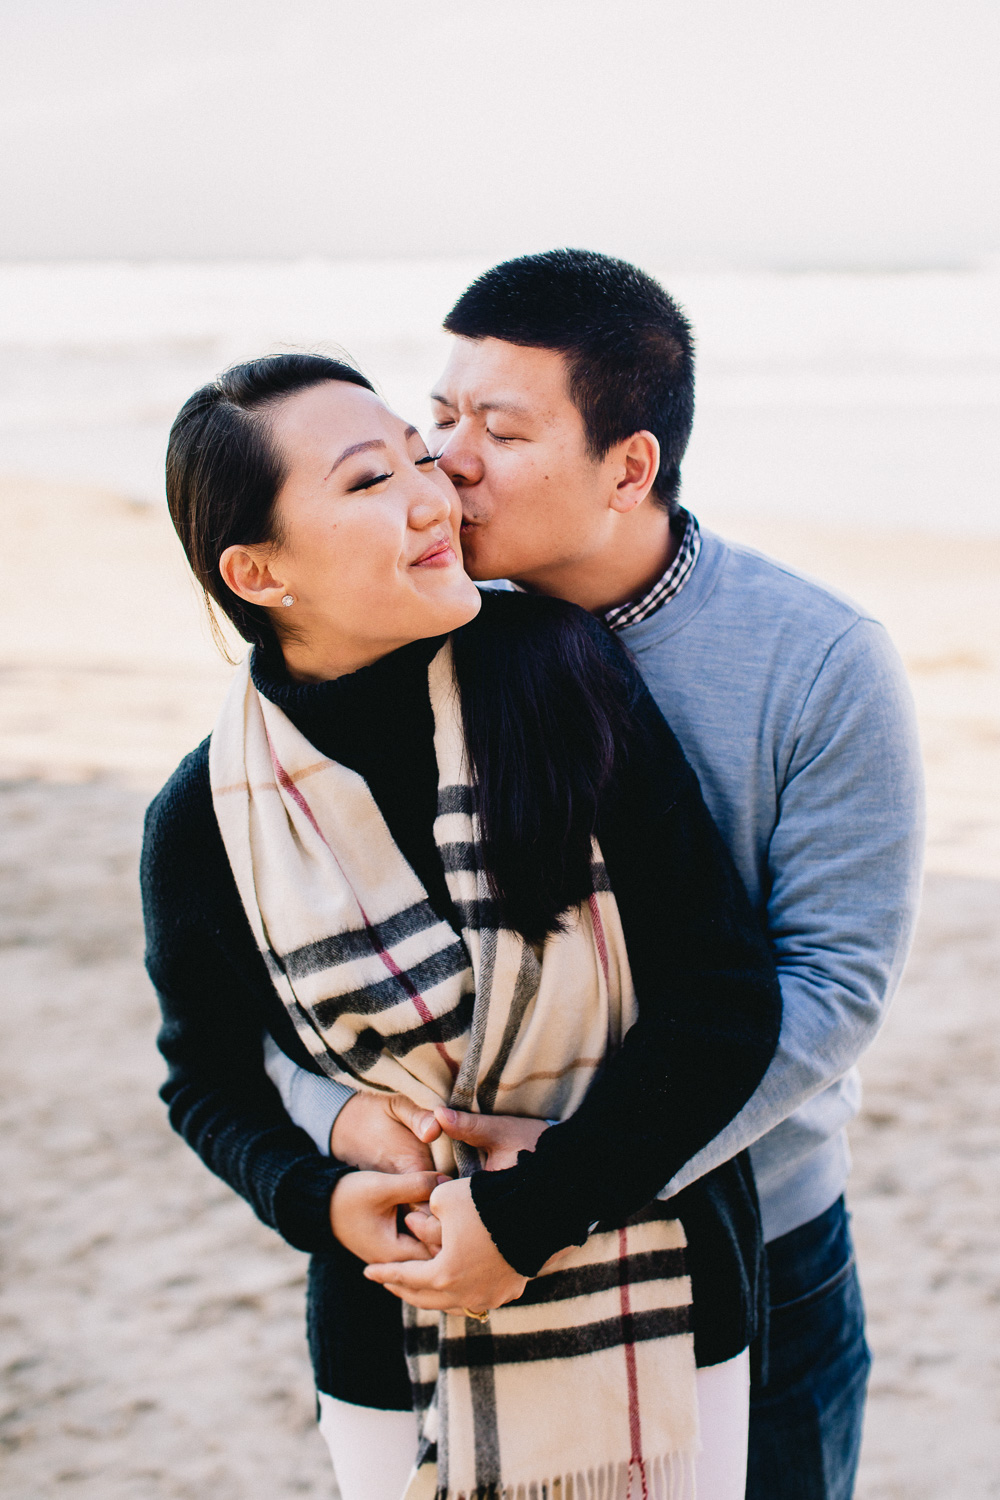 Pismo-Beach-Couples-Photography-Session-With-Puppy-111.jpg